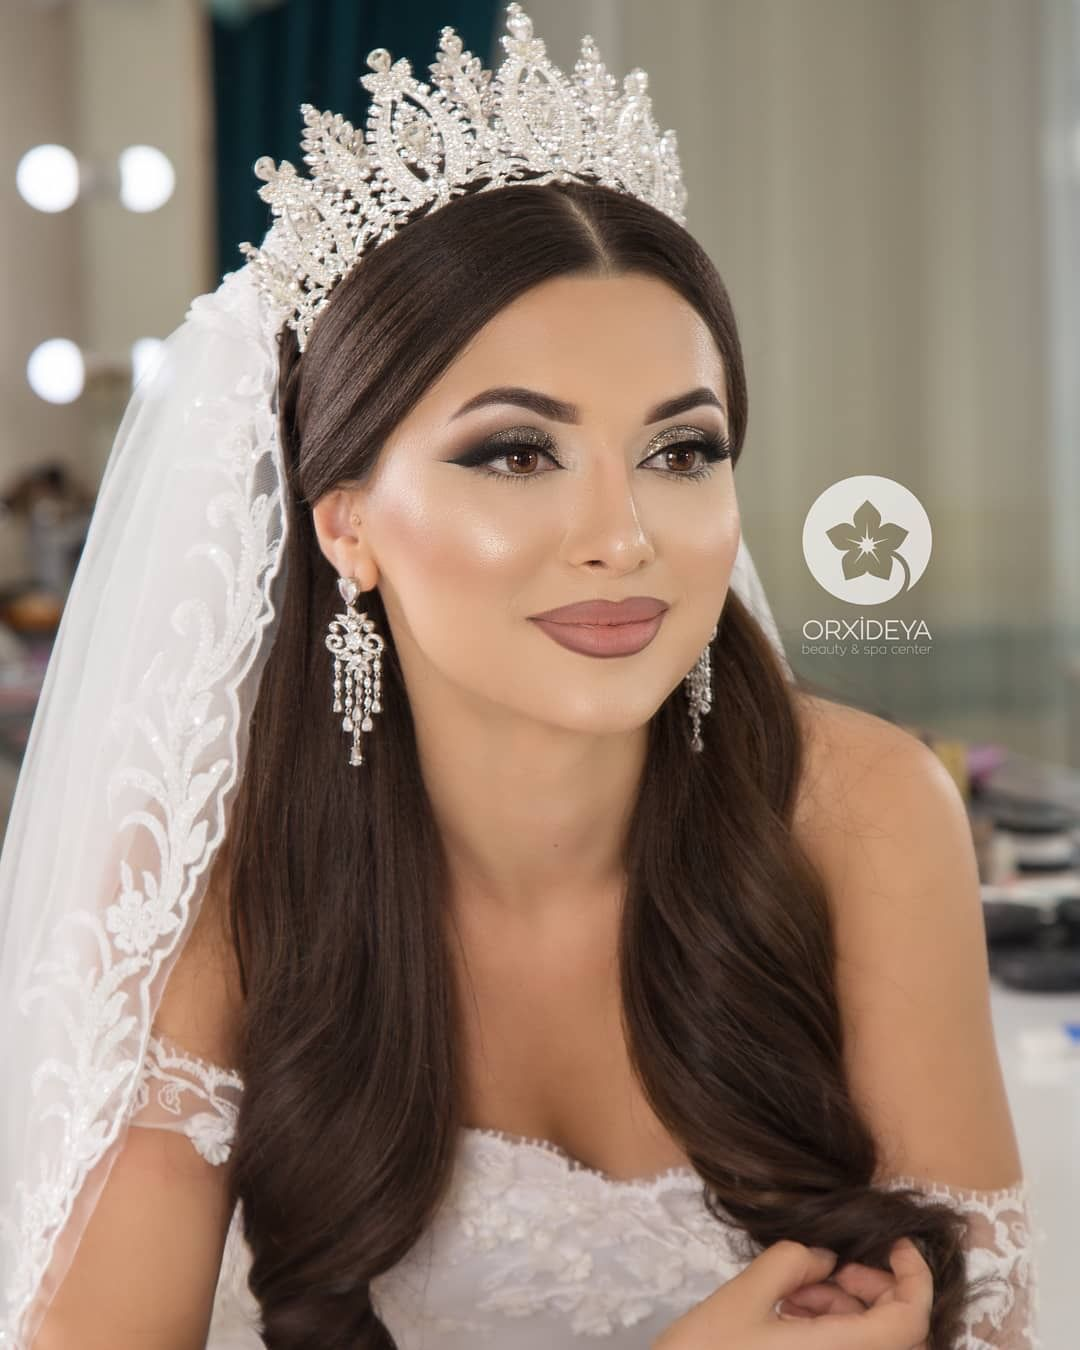 Wedding Hairstyle And Makeup: Bride Tiara, Bridal Hair, Bride Makeup